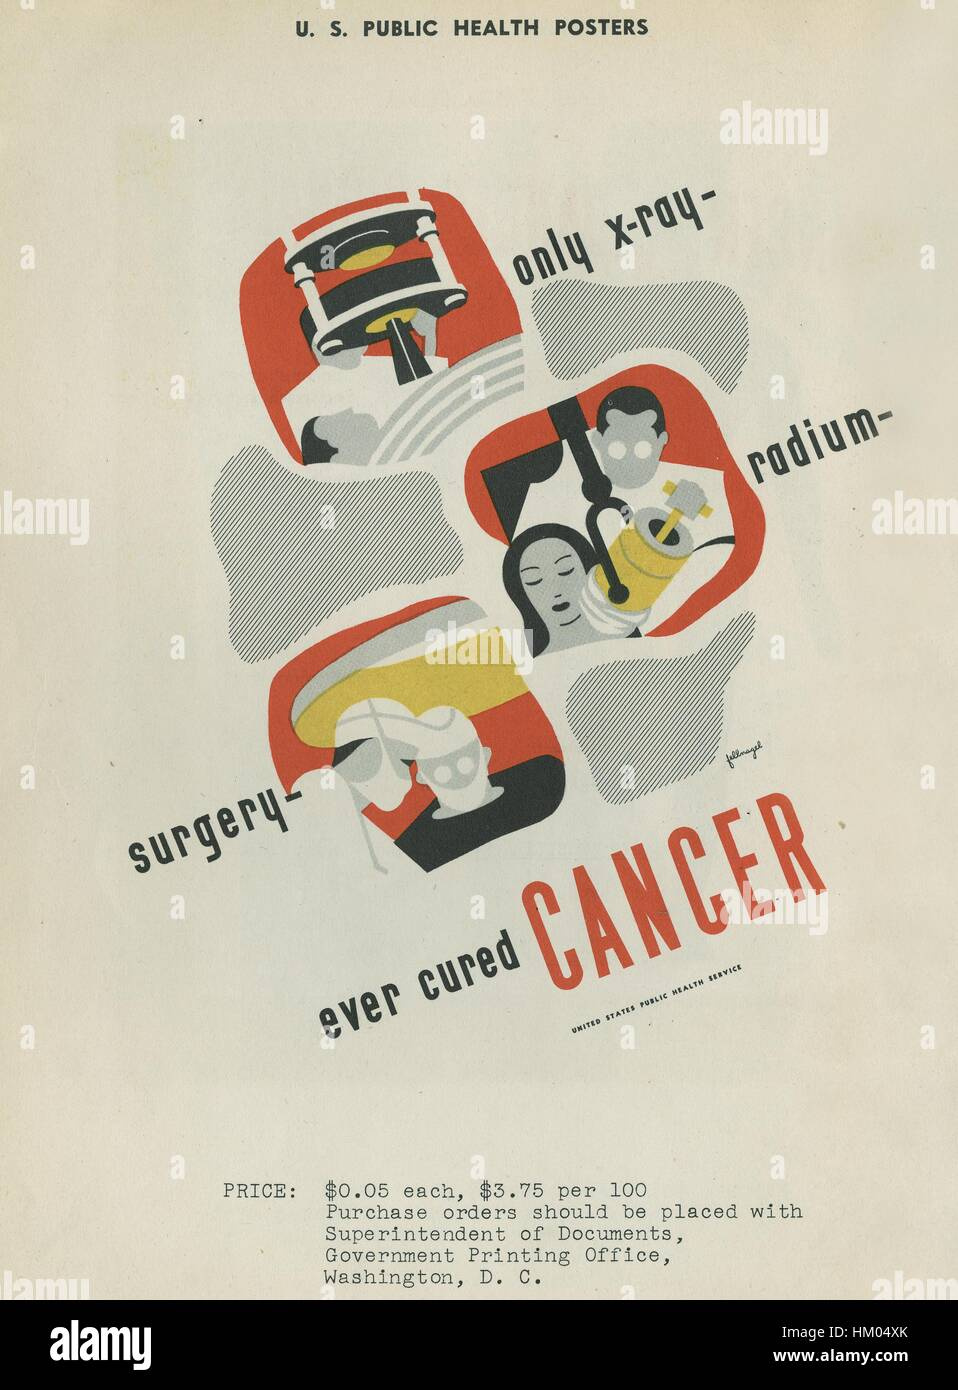 X ray poster design - Poster For The Only X Ray Radium Surgery That Ever Cured Cancer From The United States Public Health Service 1940 Courtesy National Library Of